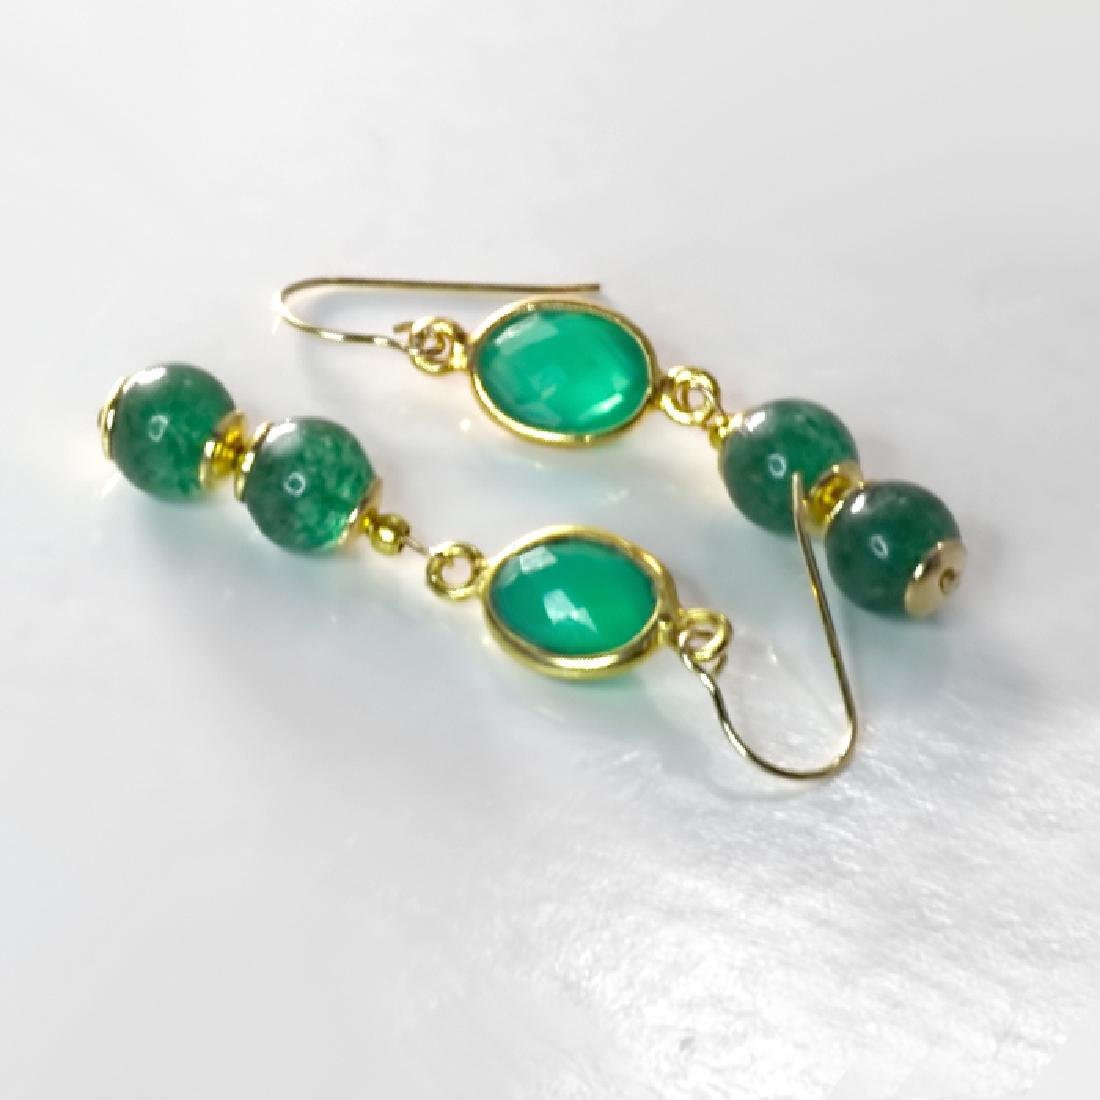 14K Art Deco Style Earrings with Jadeite Jade and - 4